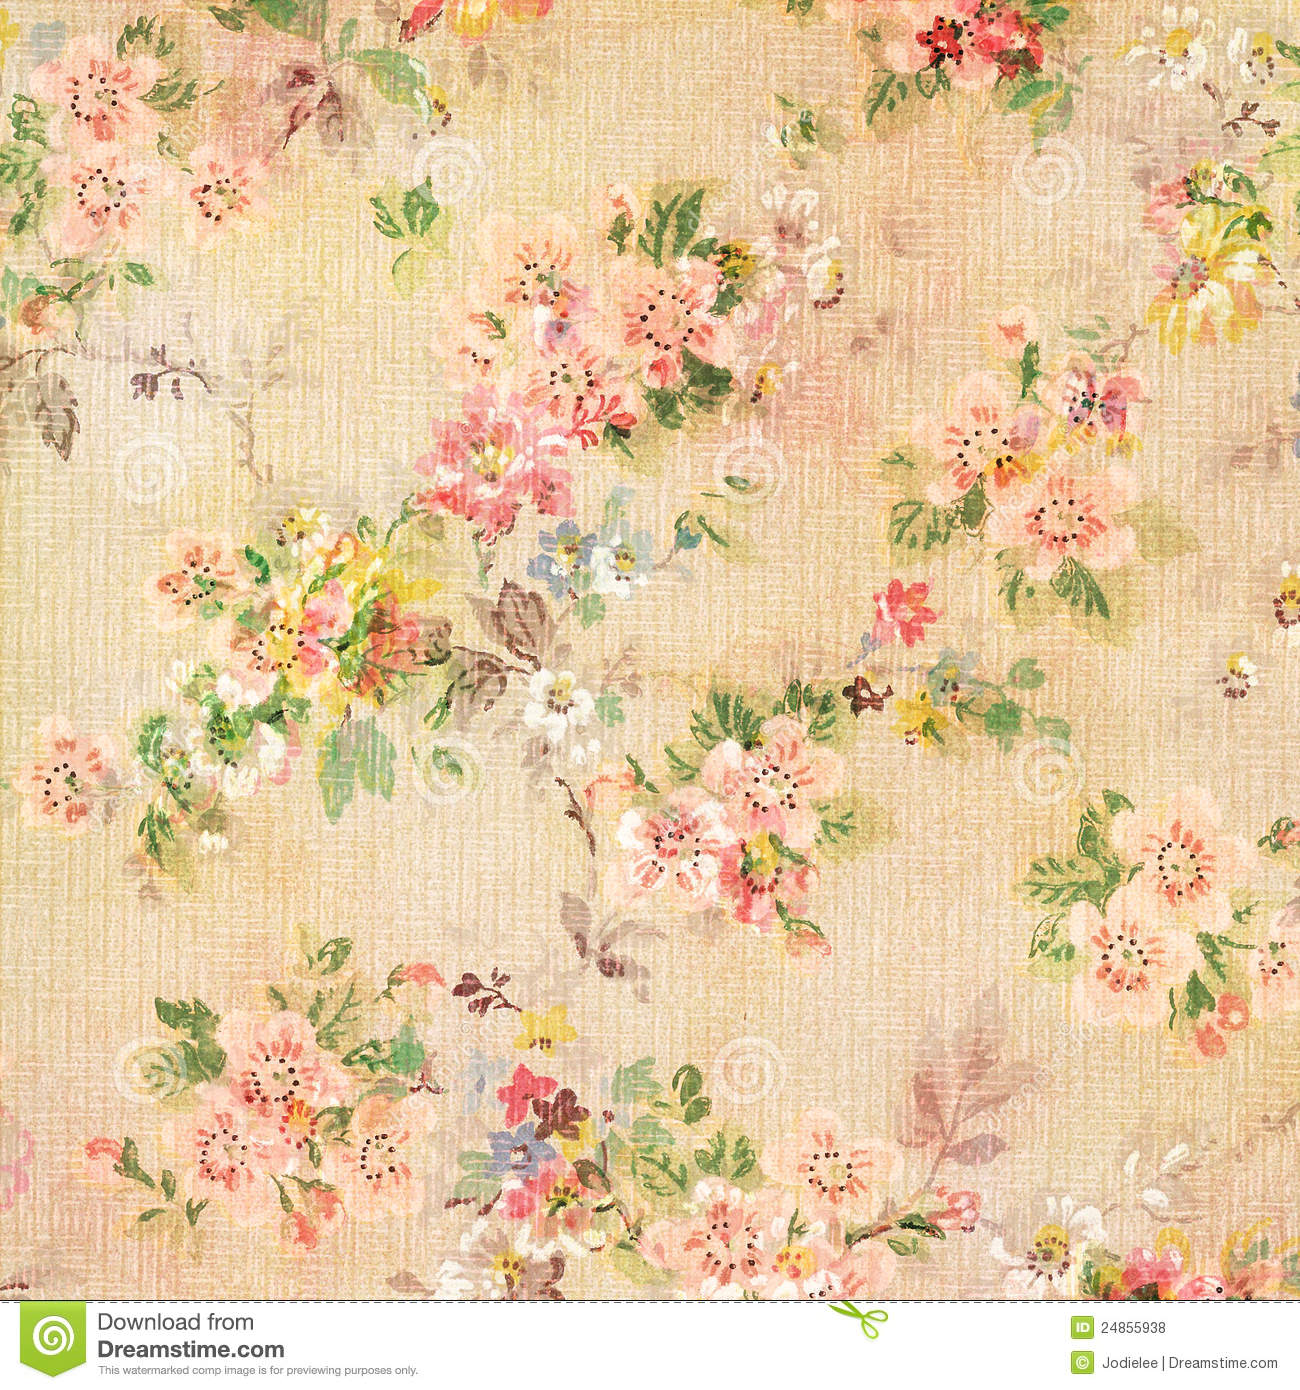 Free Download Photos Shabby Chic Vintage Antique Rose Floral